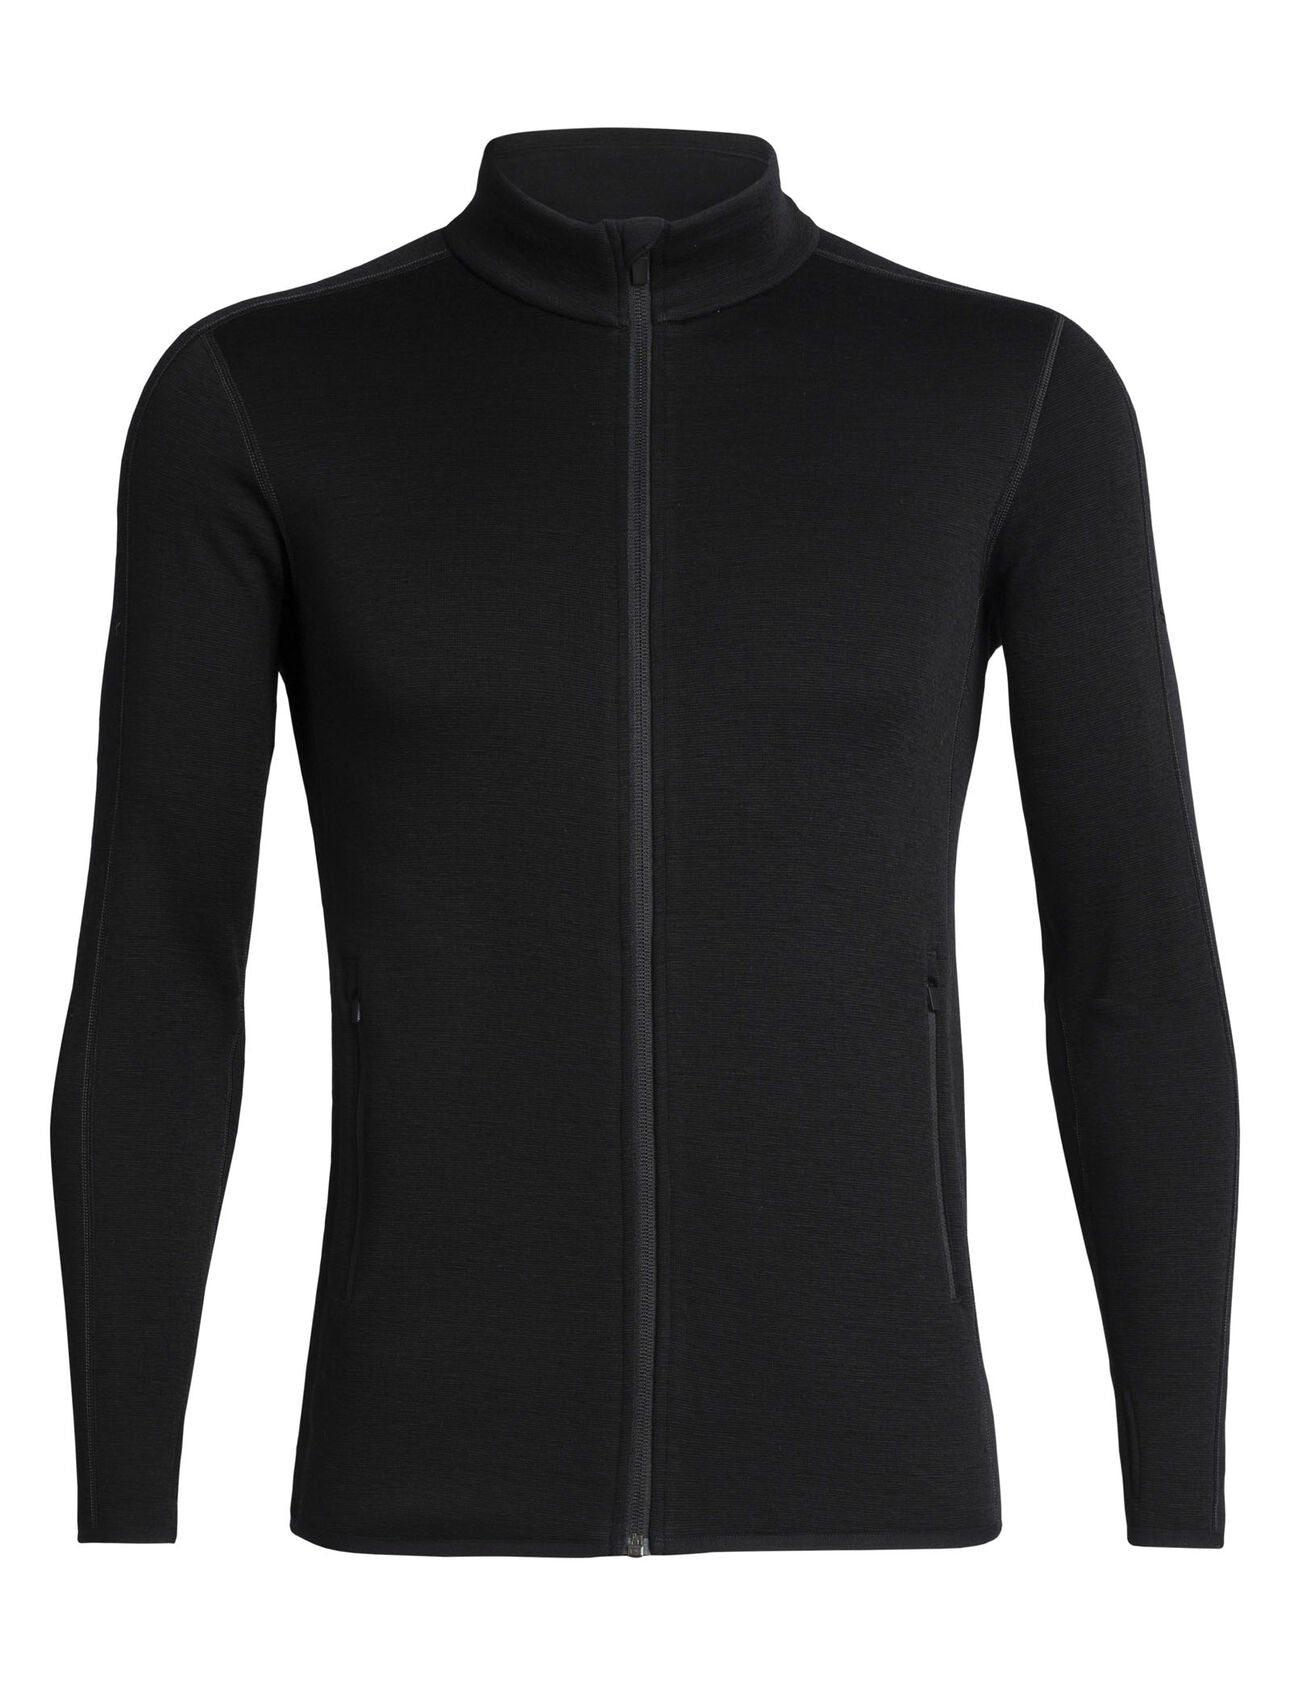 Icebreaker Elemental LS Zip (Men's) W20 - Black - Find Your Feet Australia Hobart Launceston Tasmania